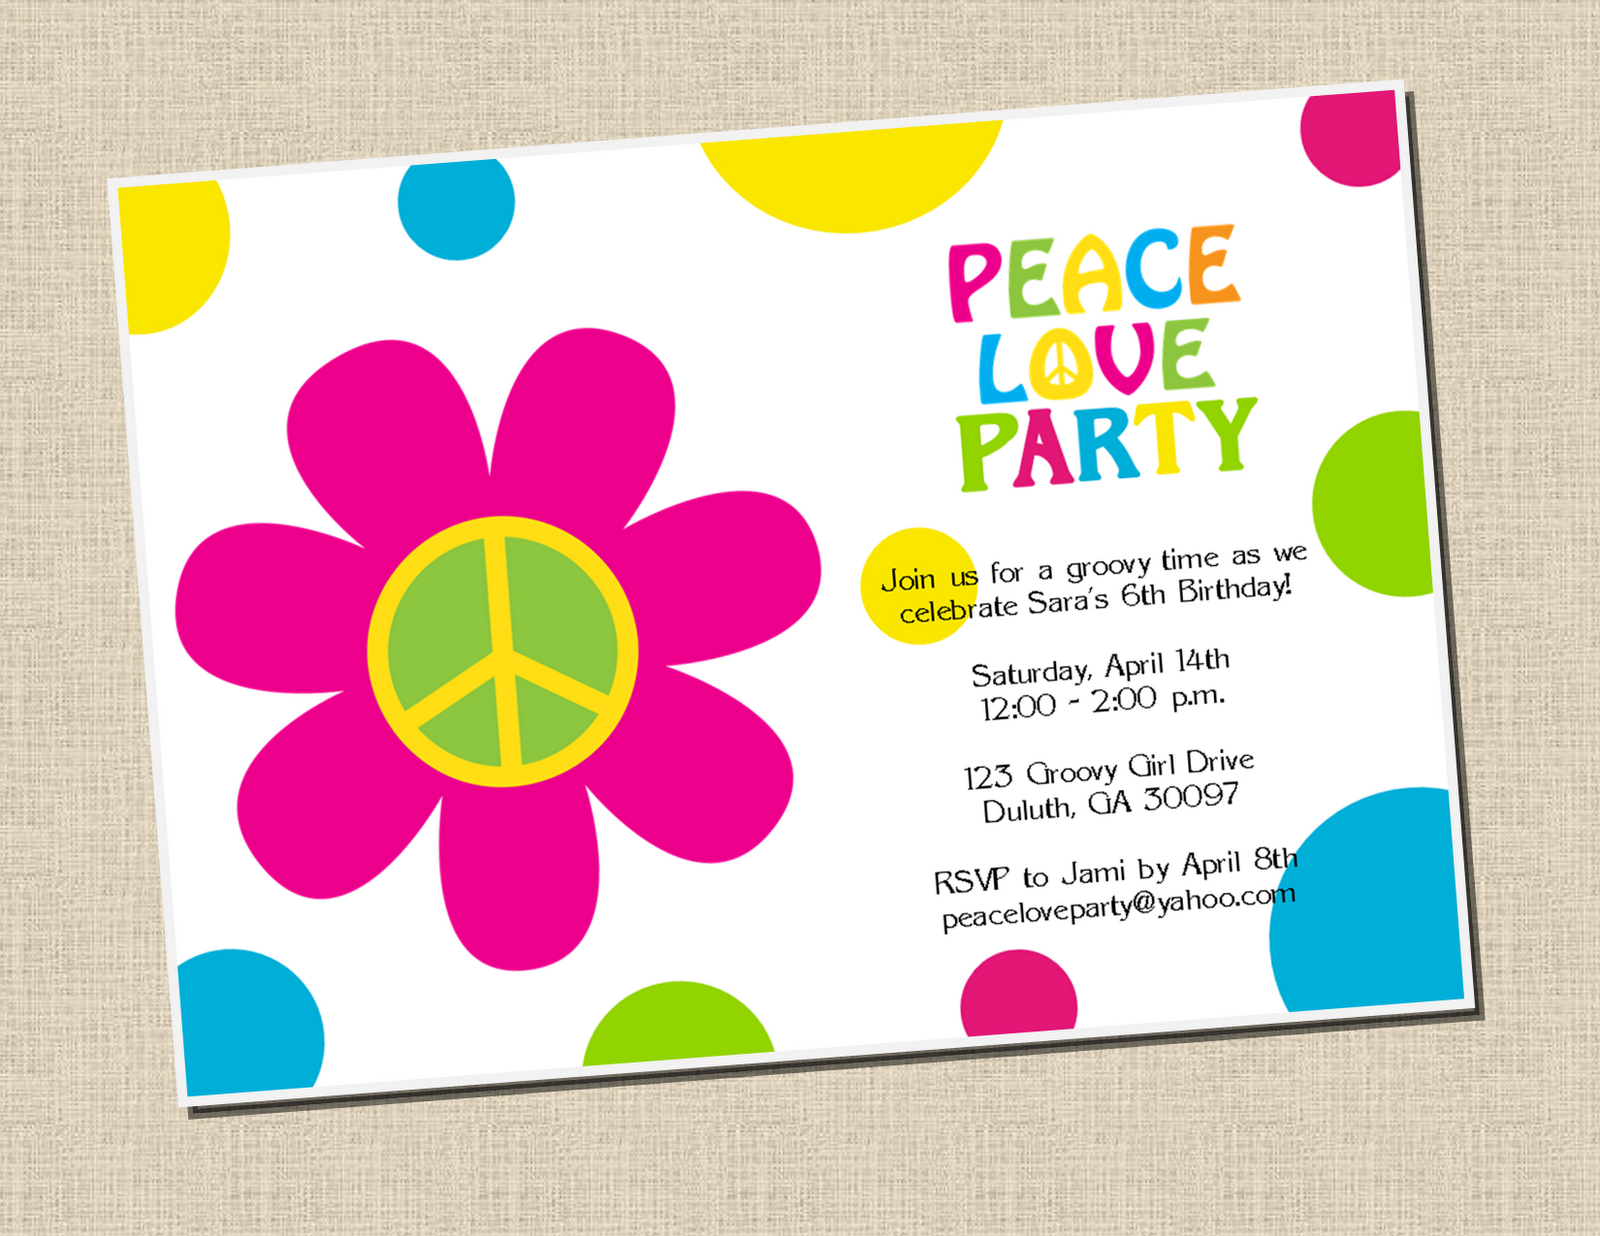 Peace Love Party - Sweet Peach Paperie